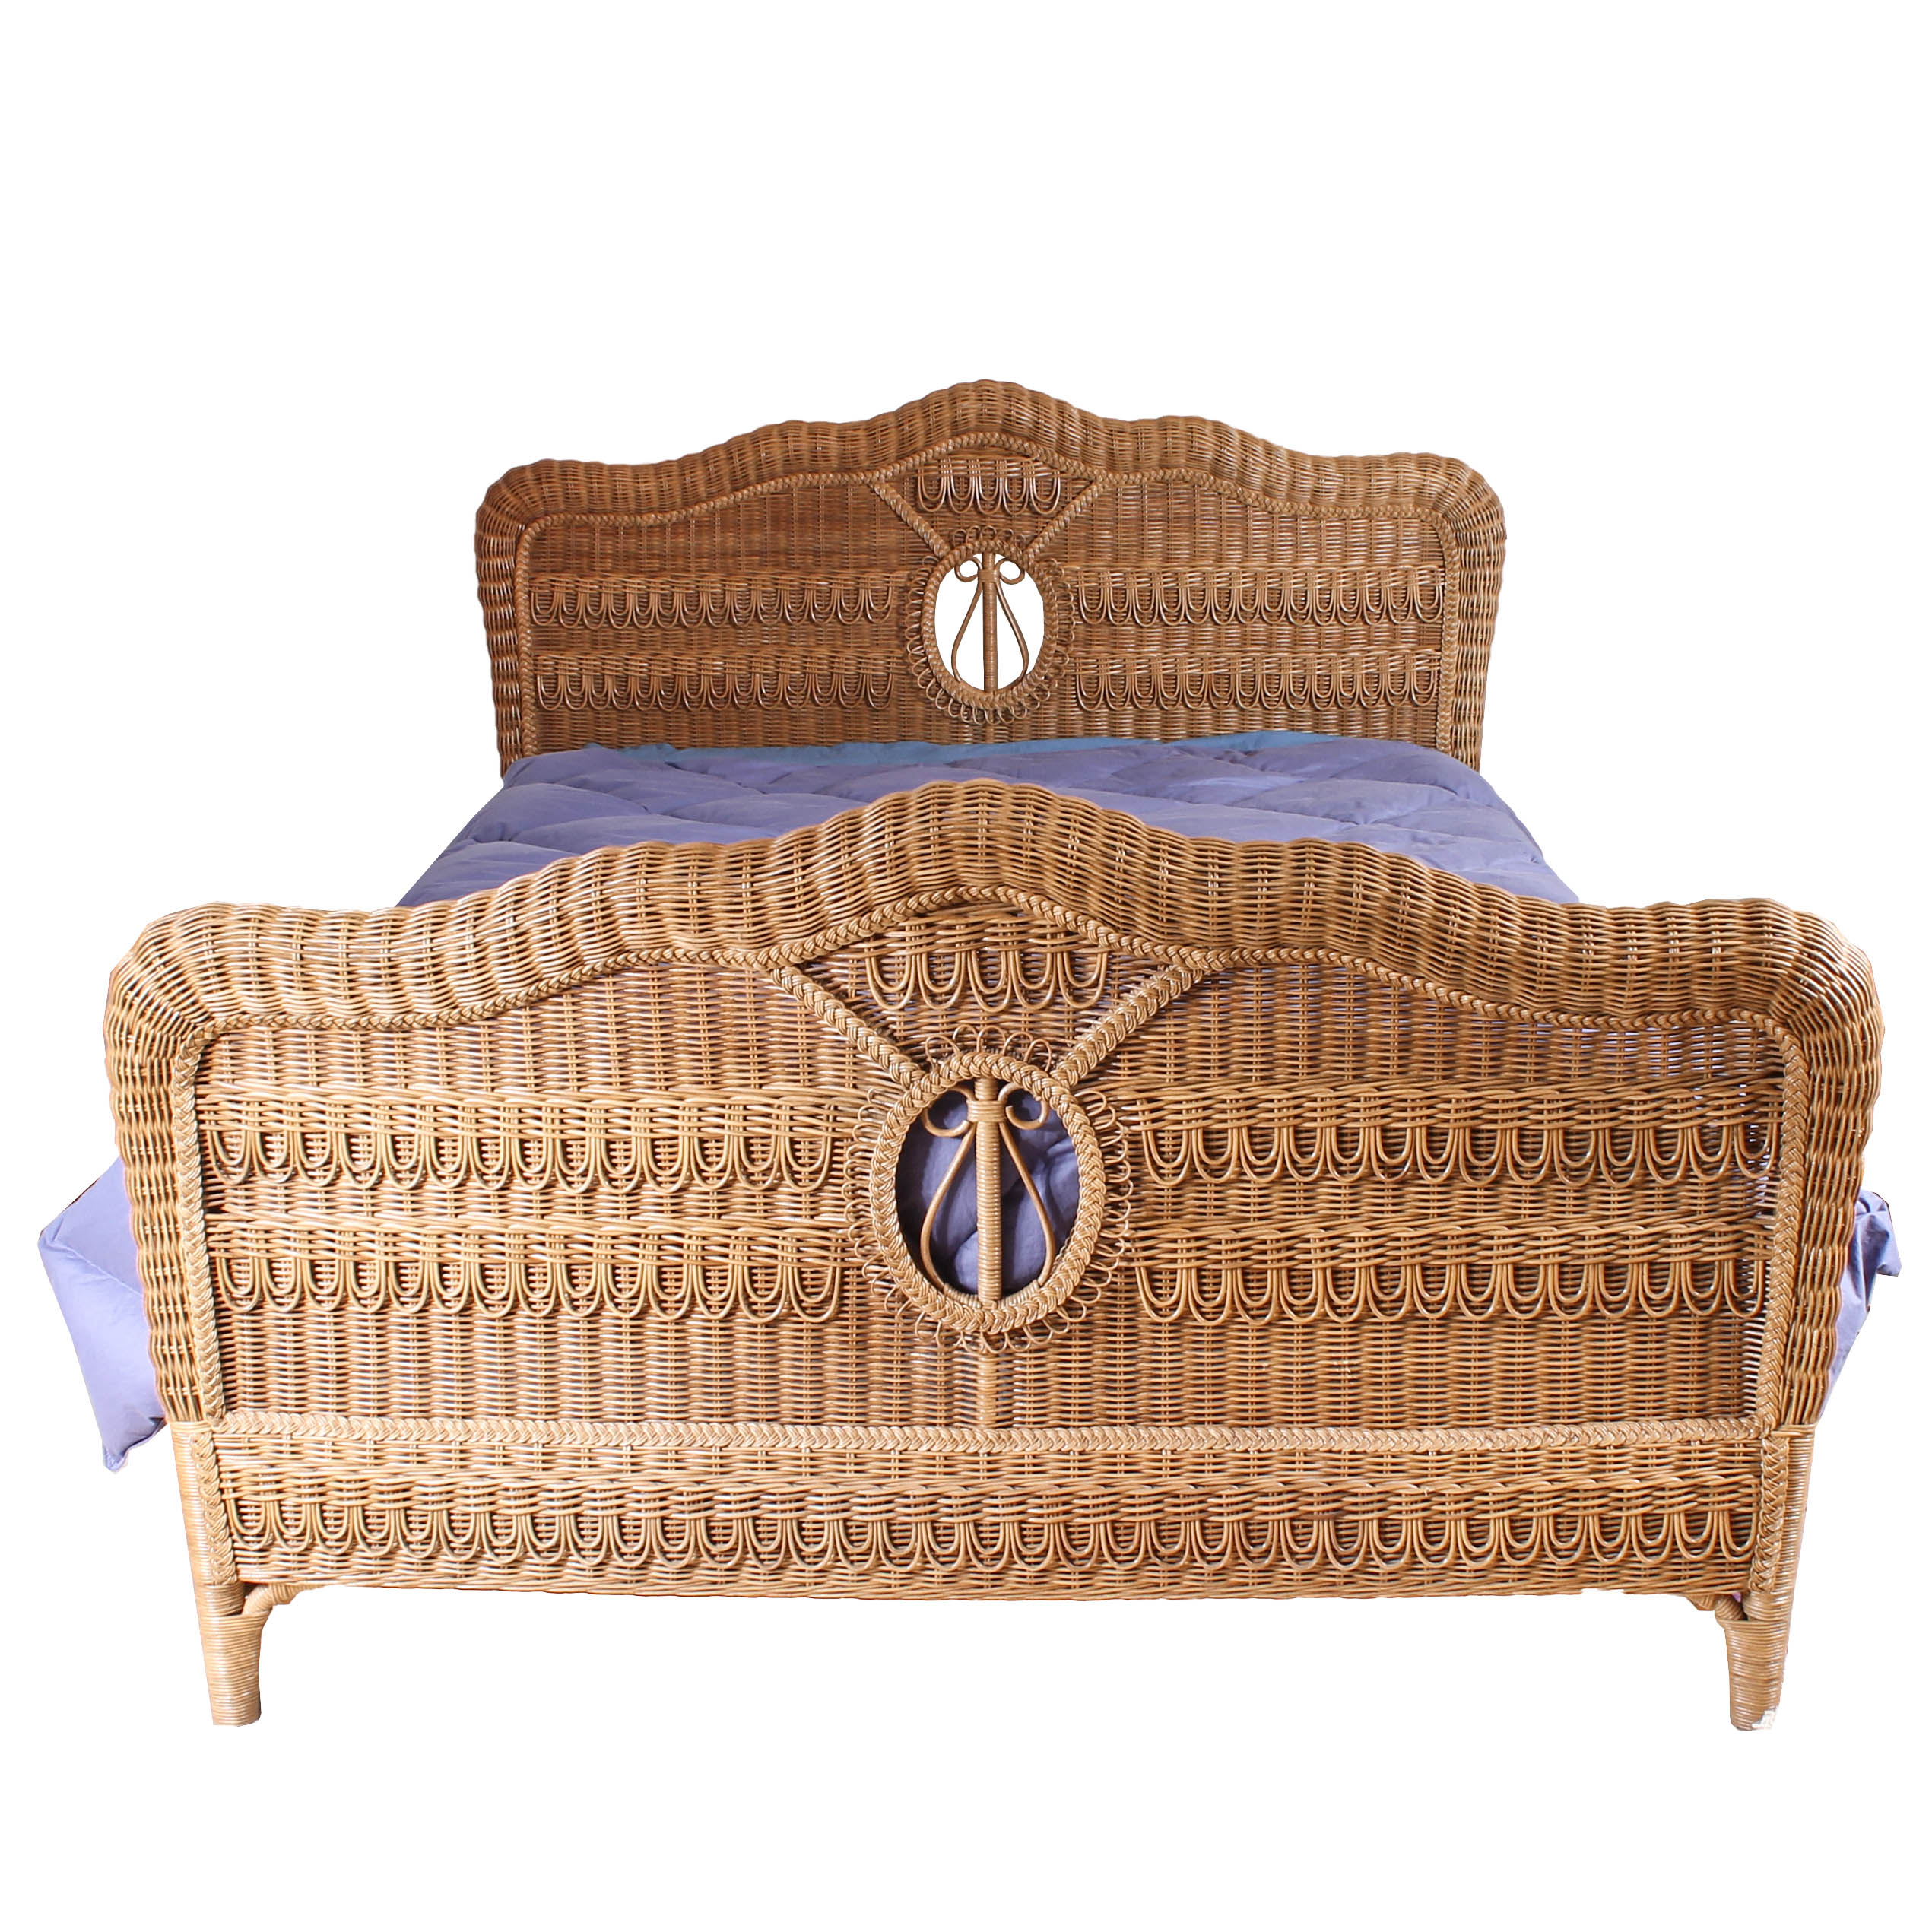 Queen Size Wicker Bed Frame : EBTH